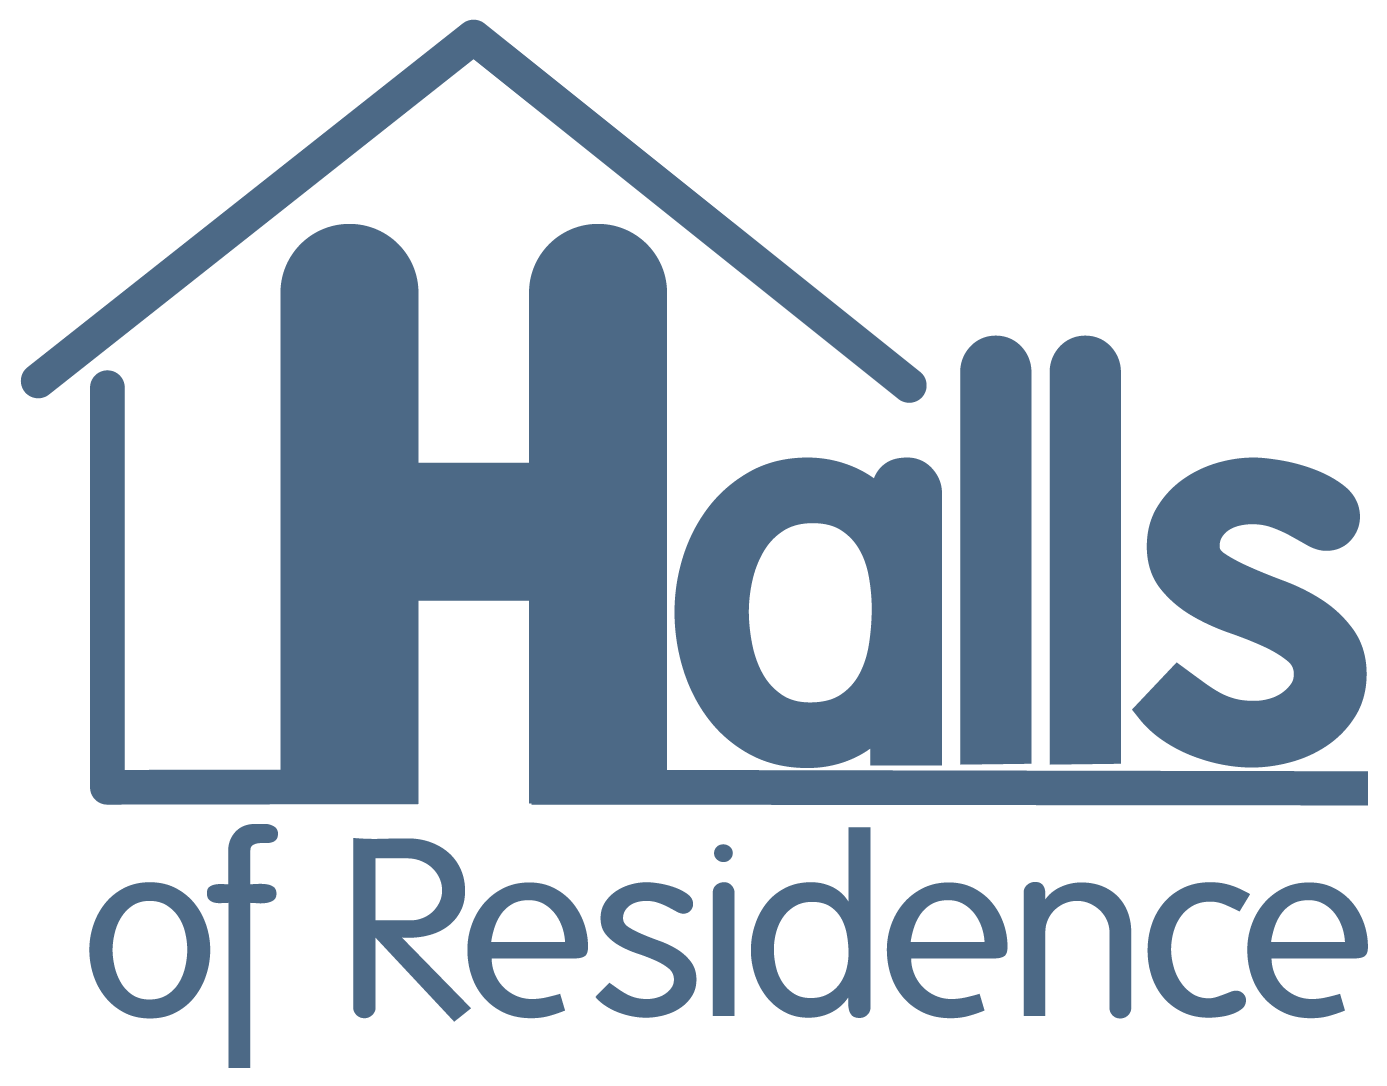 hallsofresidence.co.uk